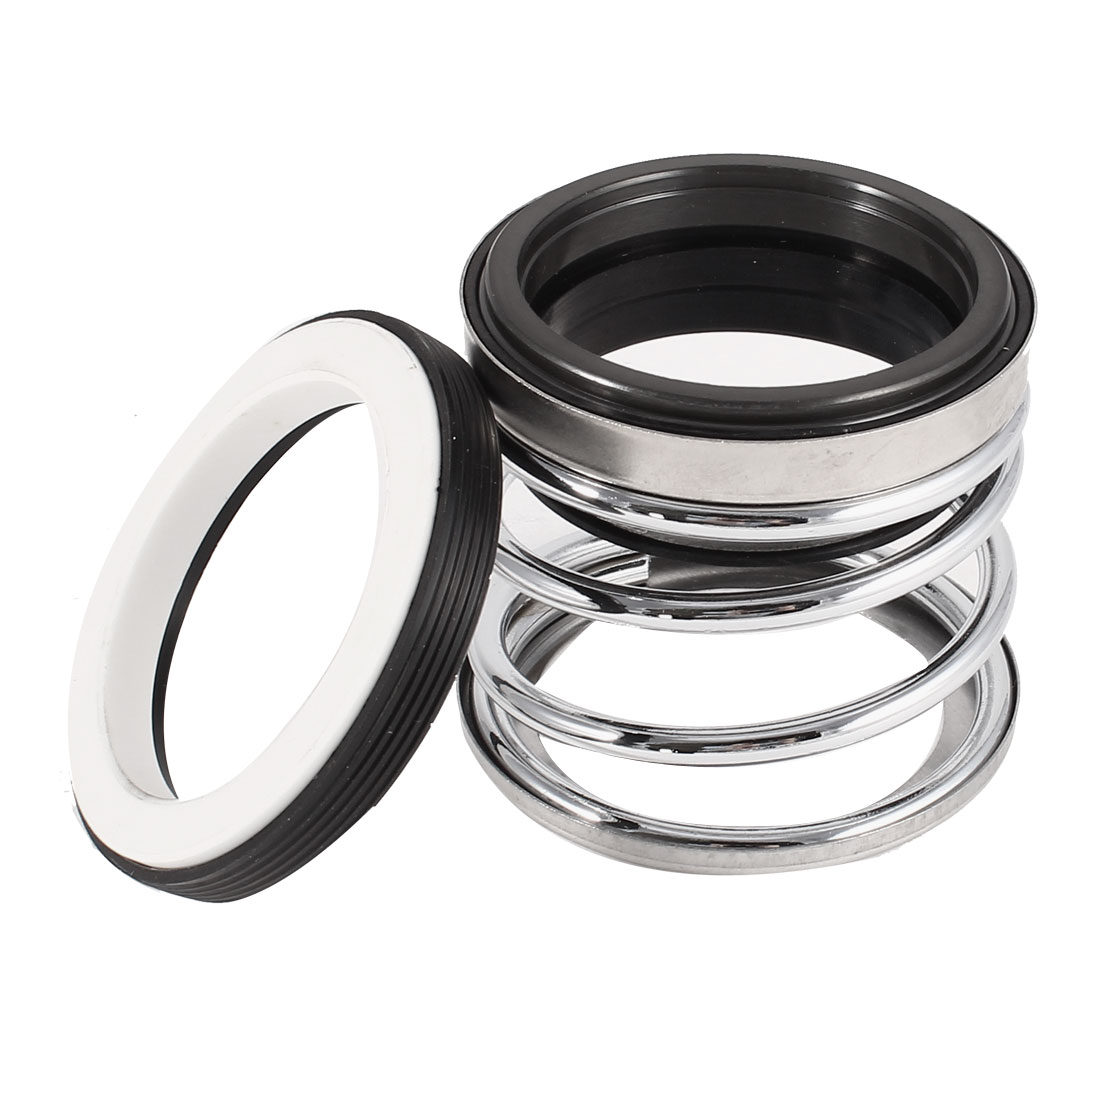 Black Rubber Bellows 45mm Internal Dia Single Coil Spring Mechanical Sealing for Water Pump